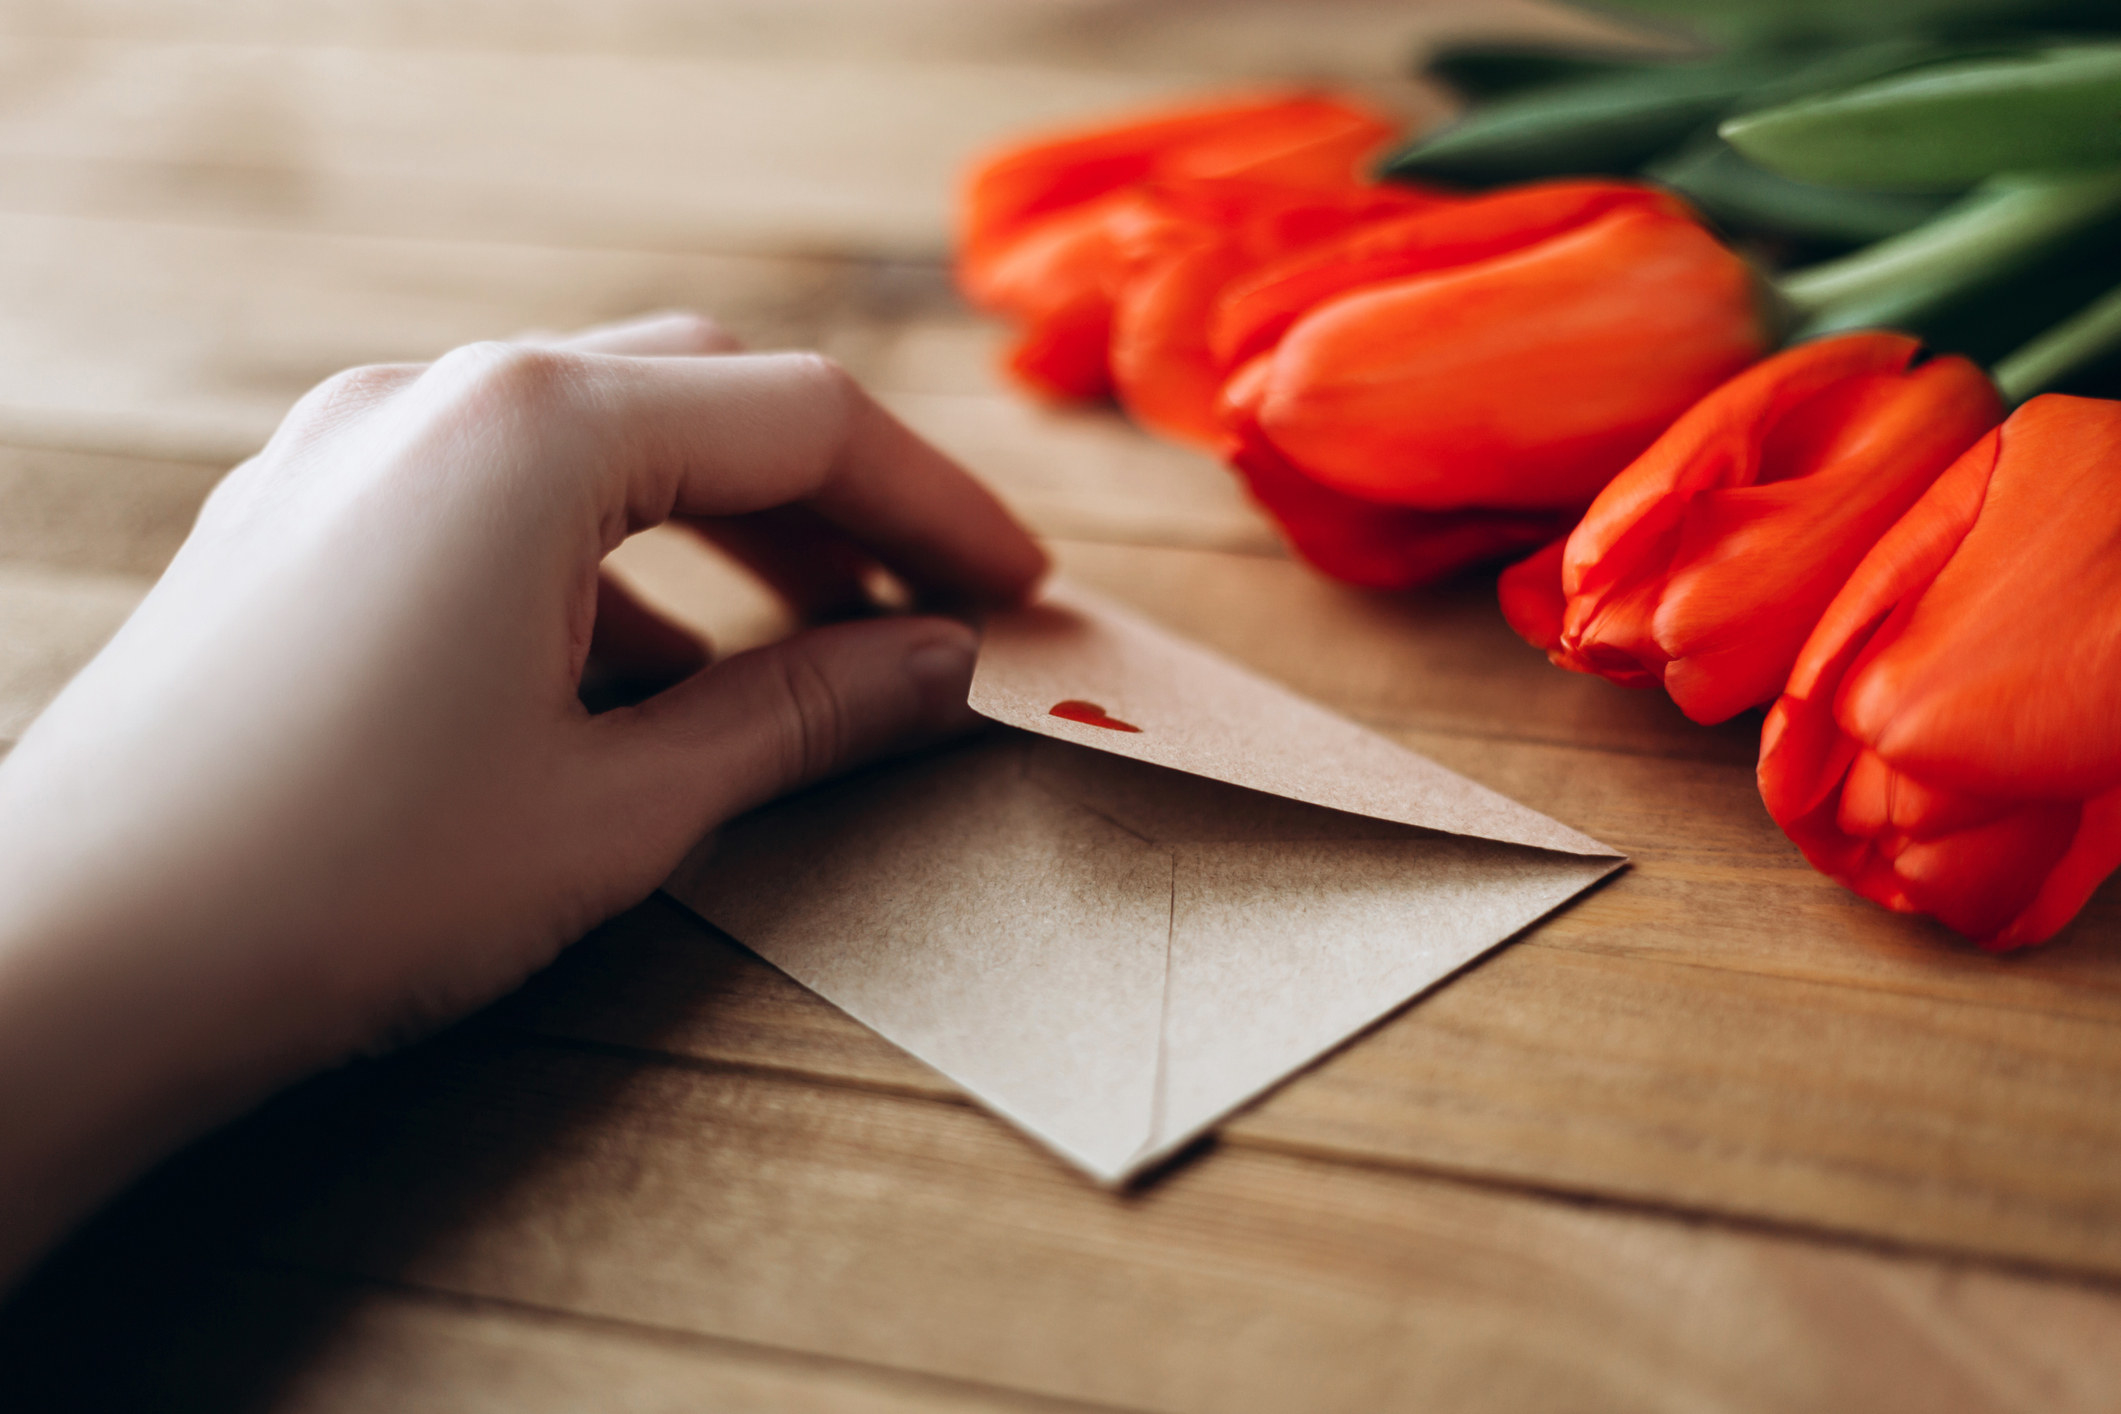 Someone opens a romantic card that has a heart on the envelope